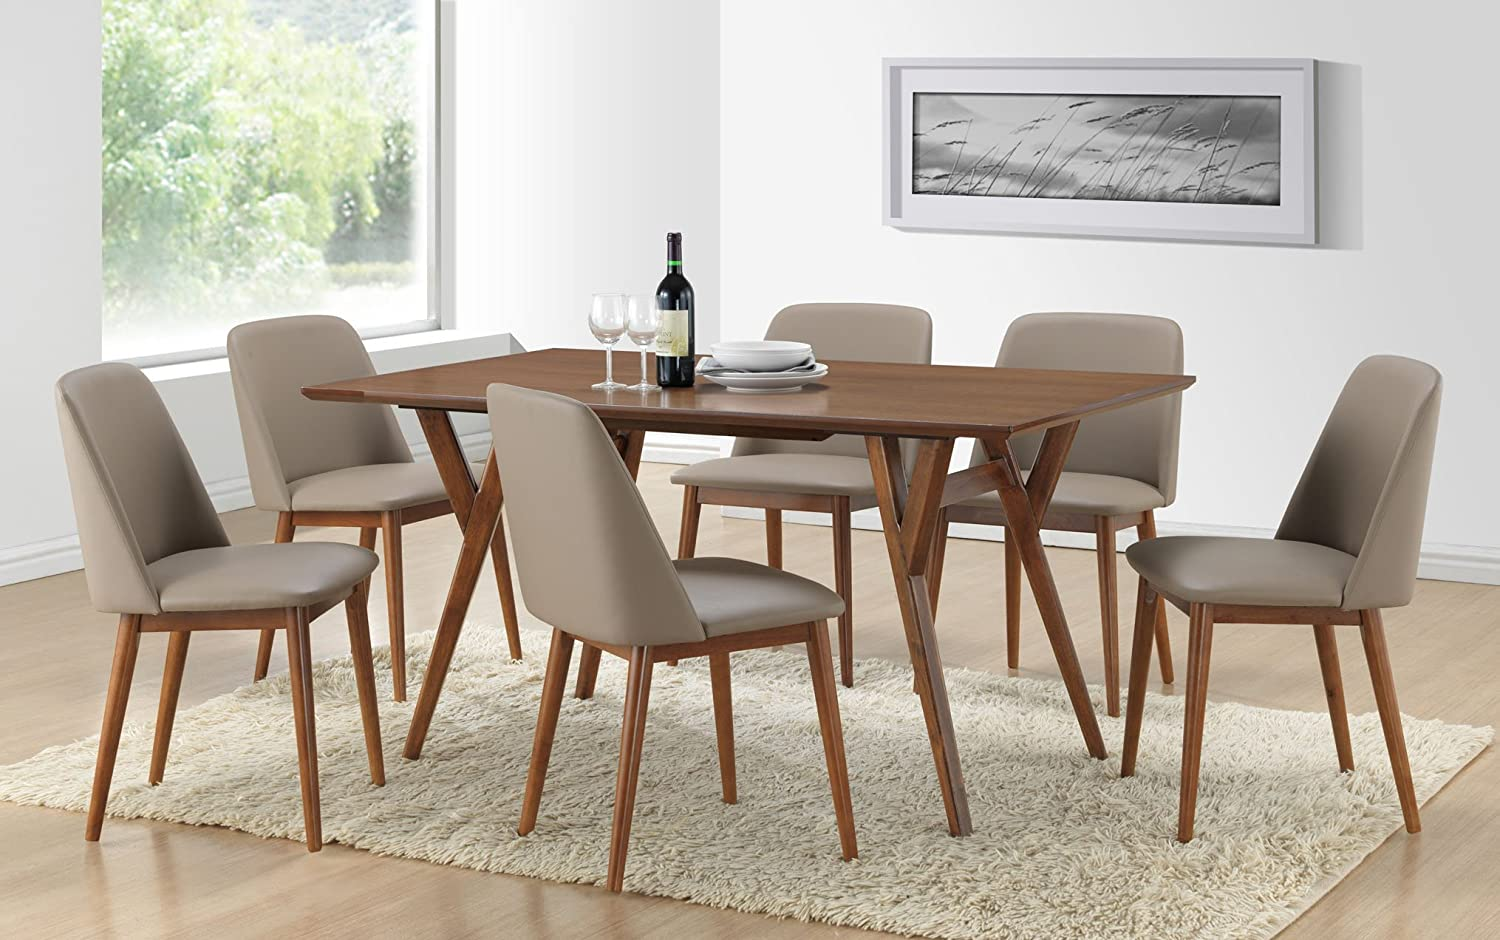 century modern room idea the prepare and stylish table chairs mid most dining chair